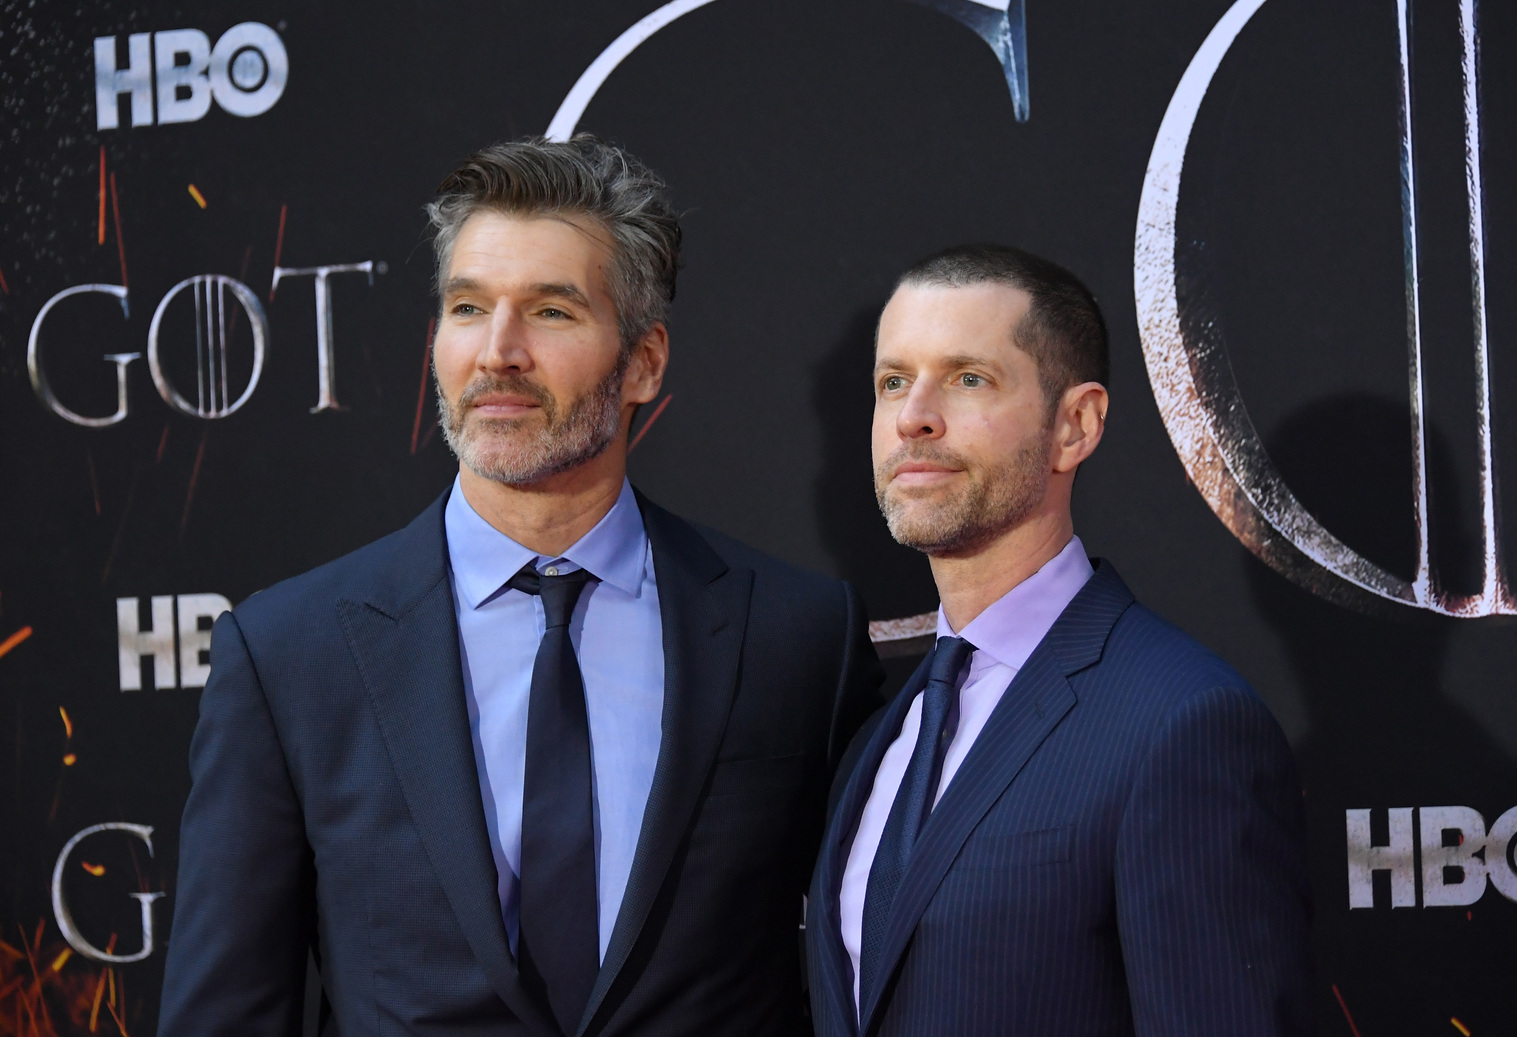 David Benioff és D.B. Weiss (Fotó: Getty Images/Mike Coppola)